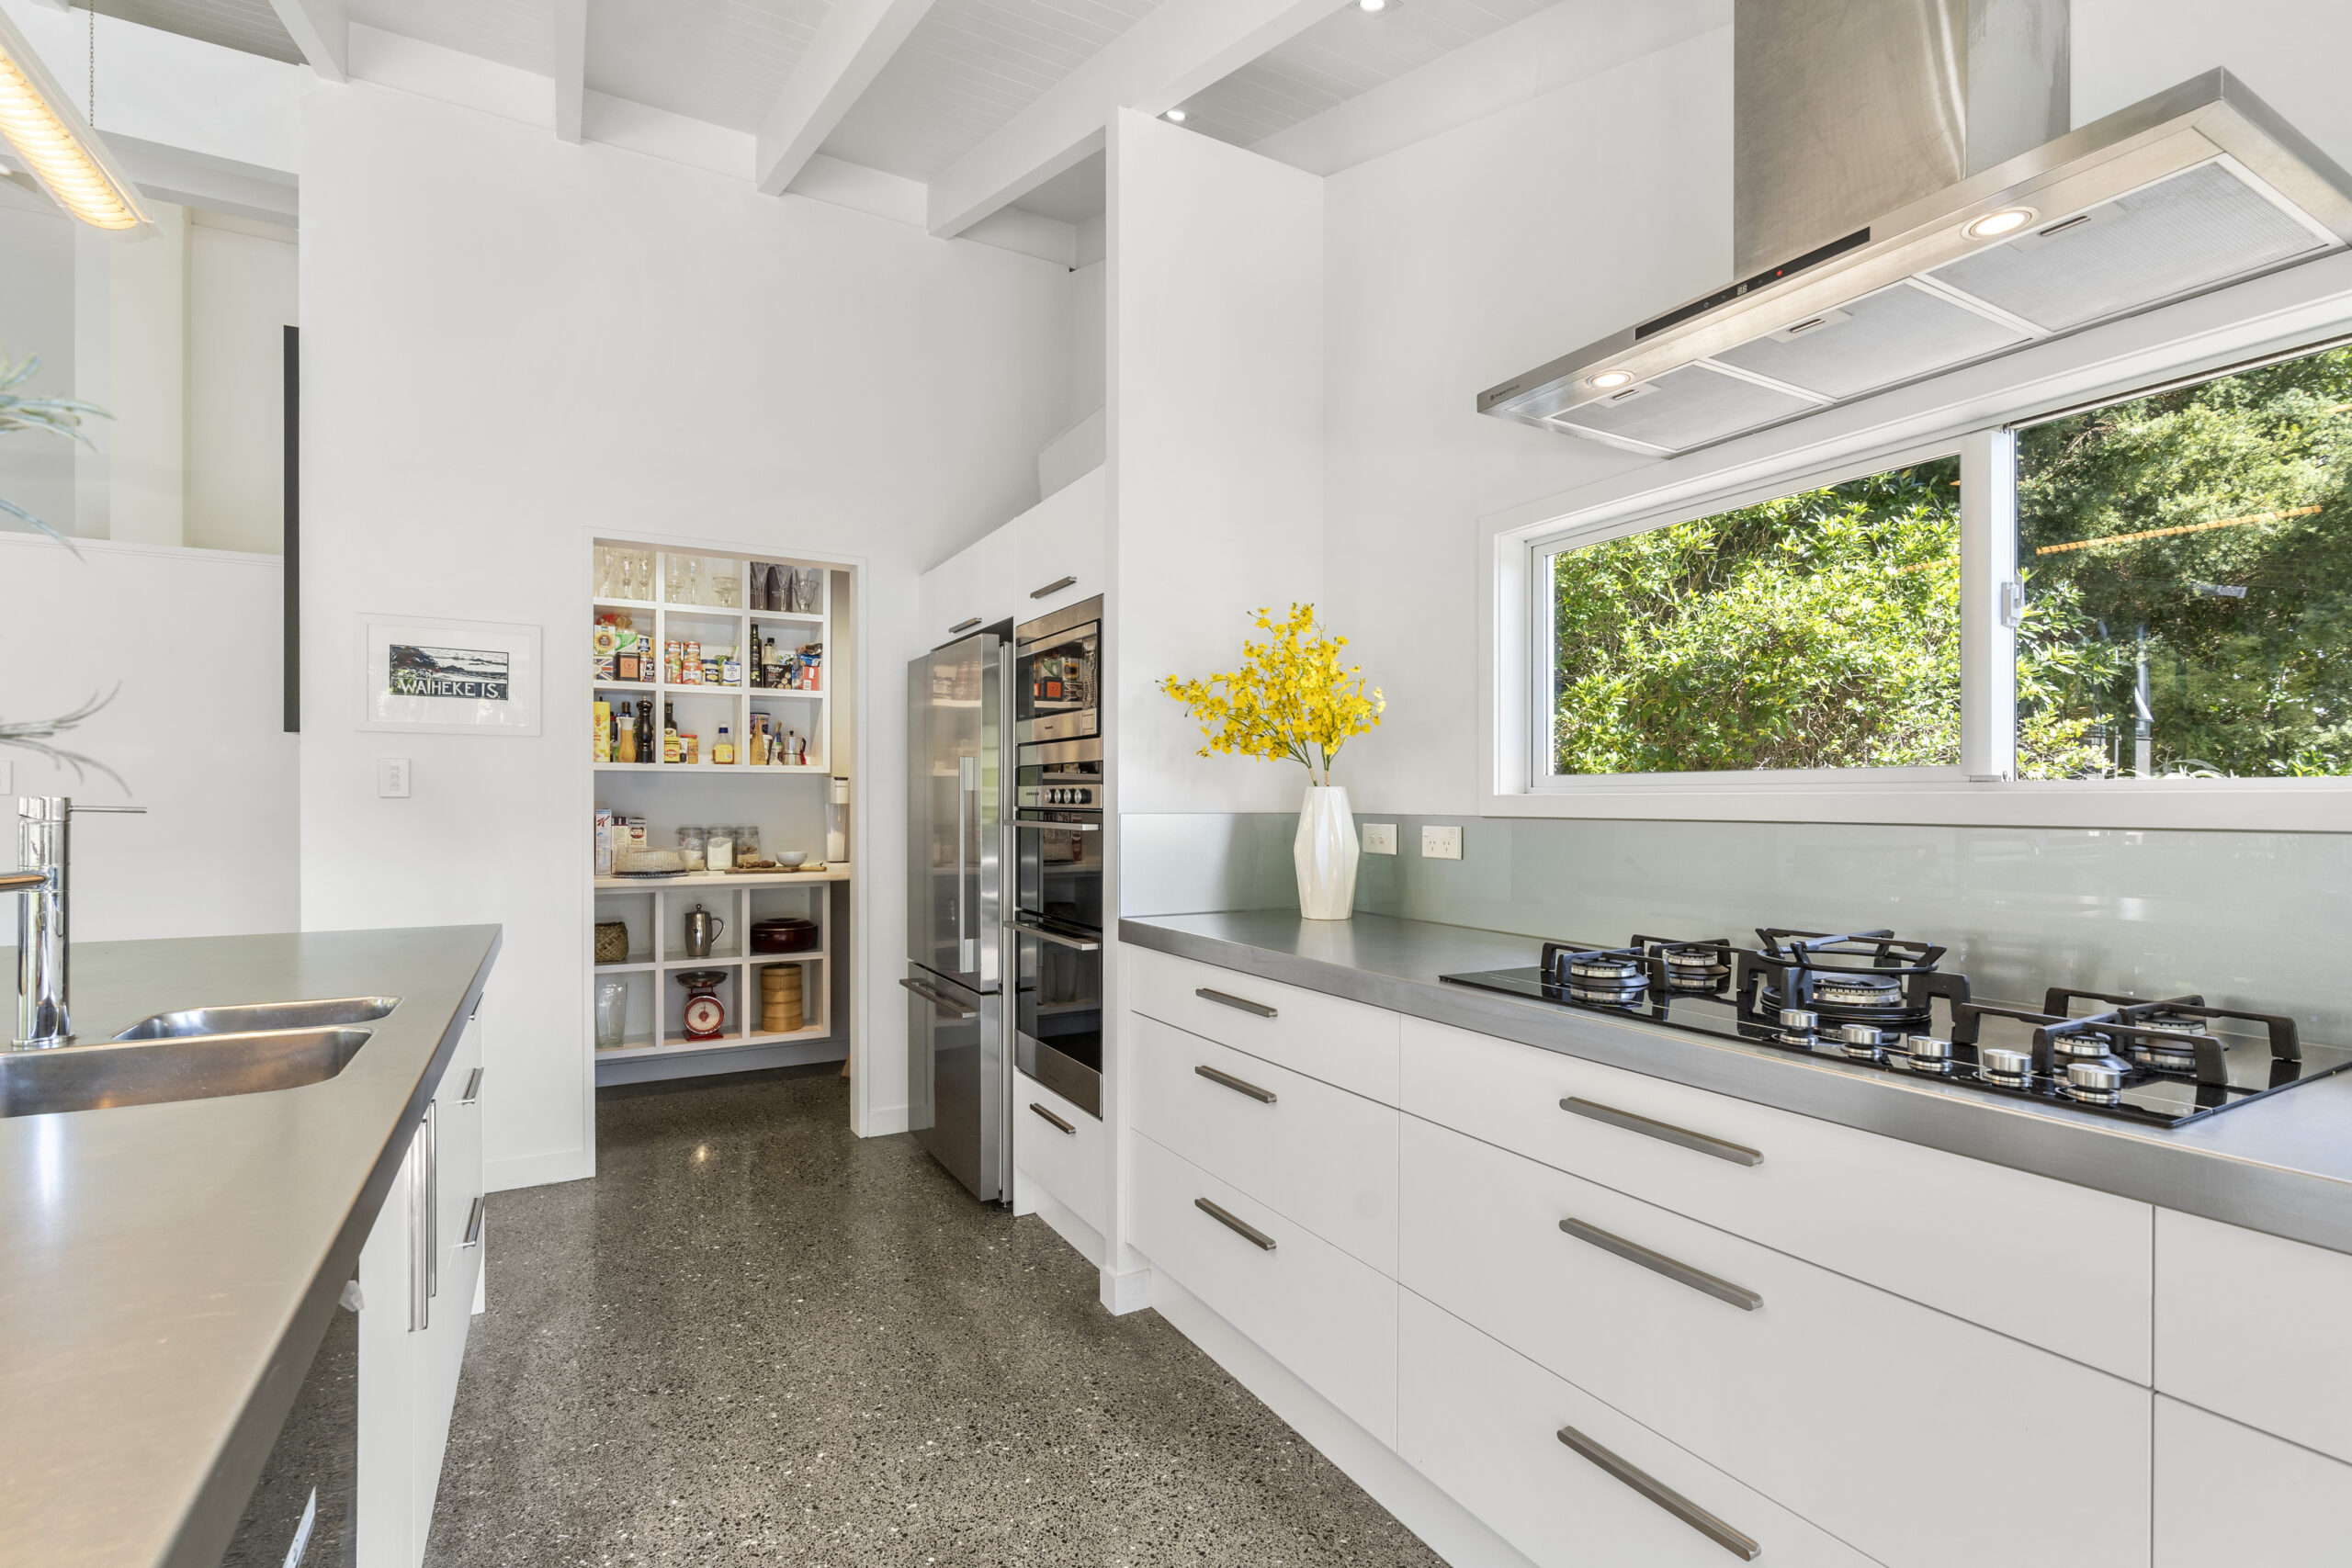 19.-Kitchen-and-pantry-scaled.jpg